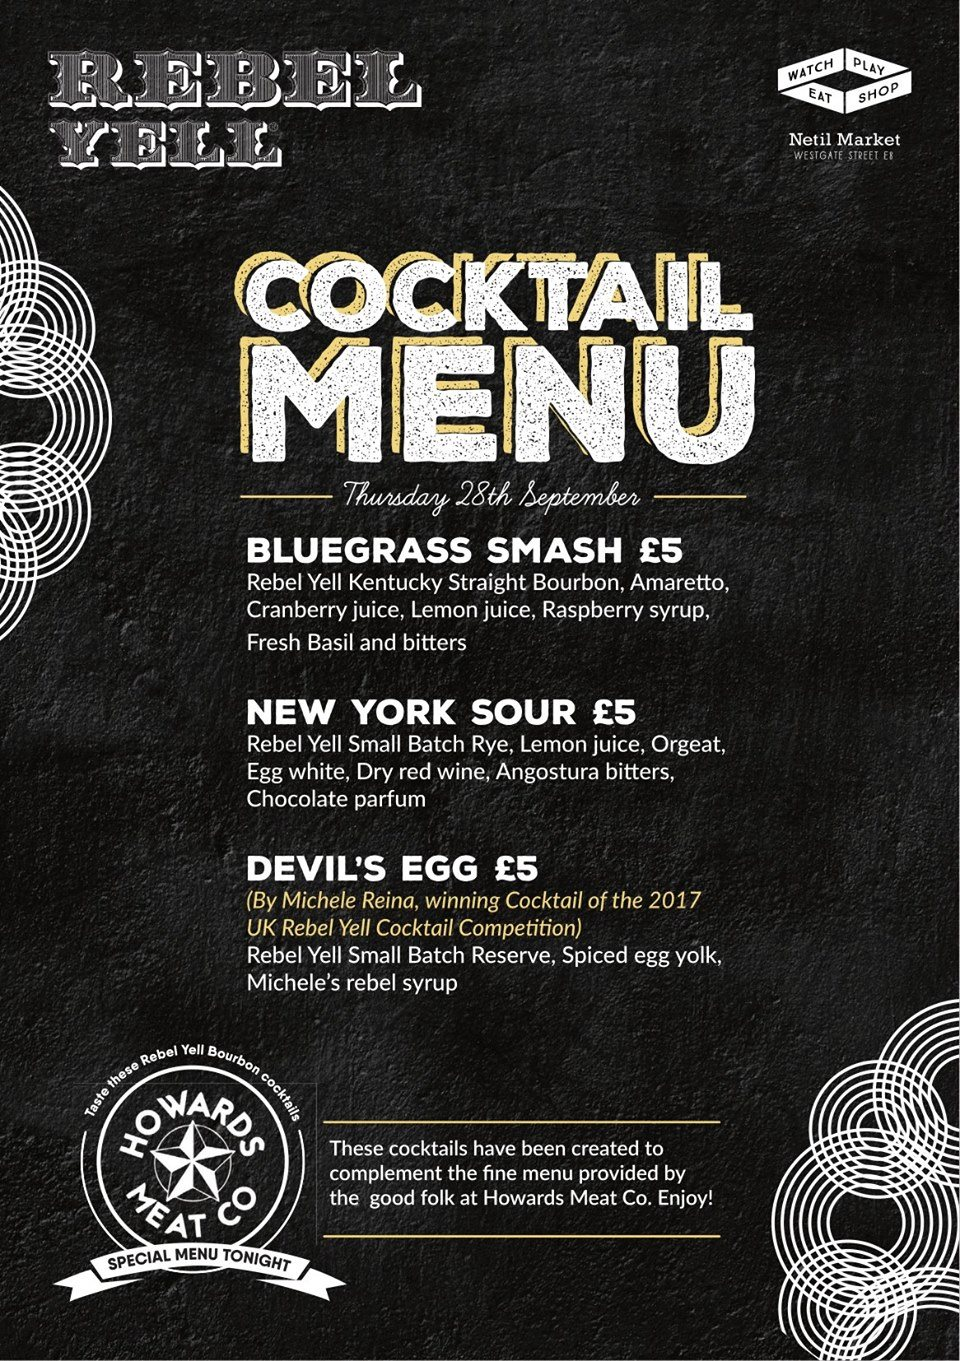 rebelcocktail menu.jpg